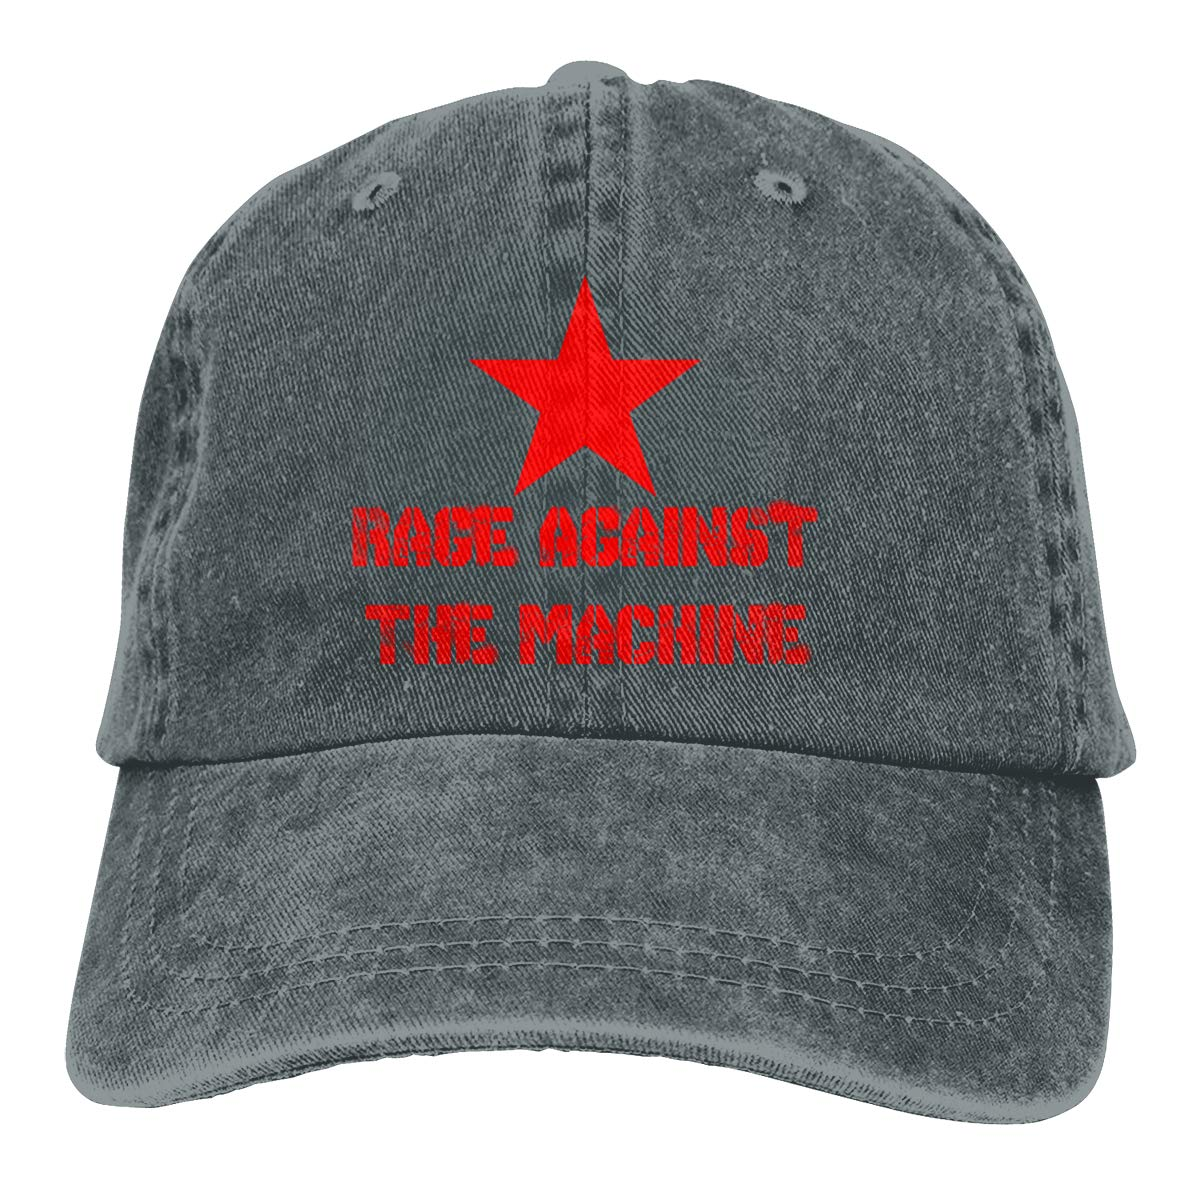 Rage Against The Machine Anarchy Adjustable Dad Hat Denim Hat Baseball Cap  at Amazon Men s Clothing store  a2c7ef6428e